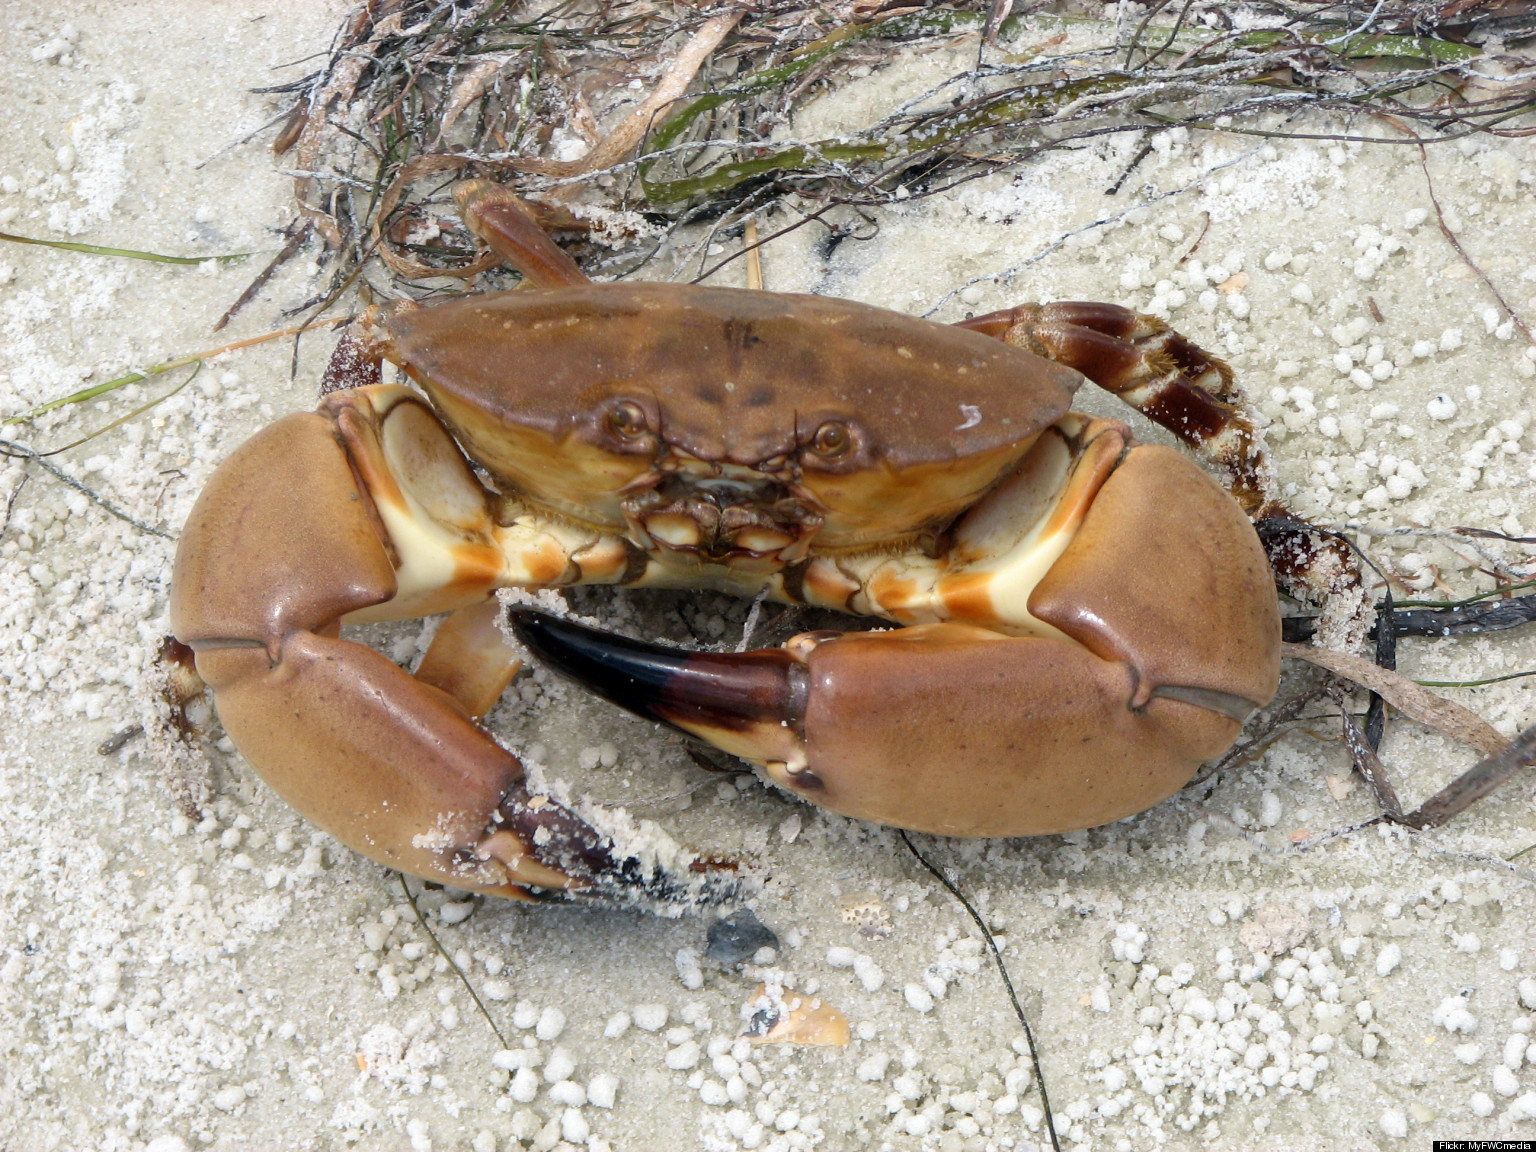 Pictures of florida crabs Blue Crab Photo Gallery - FWC